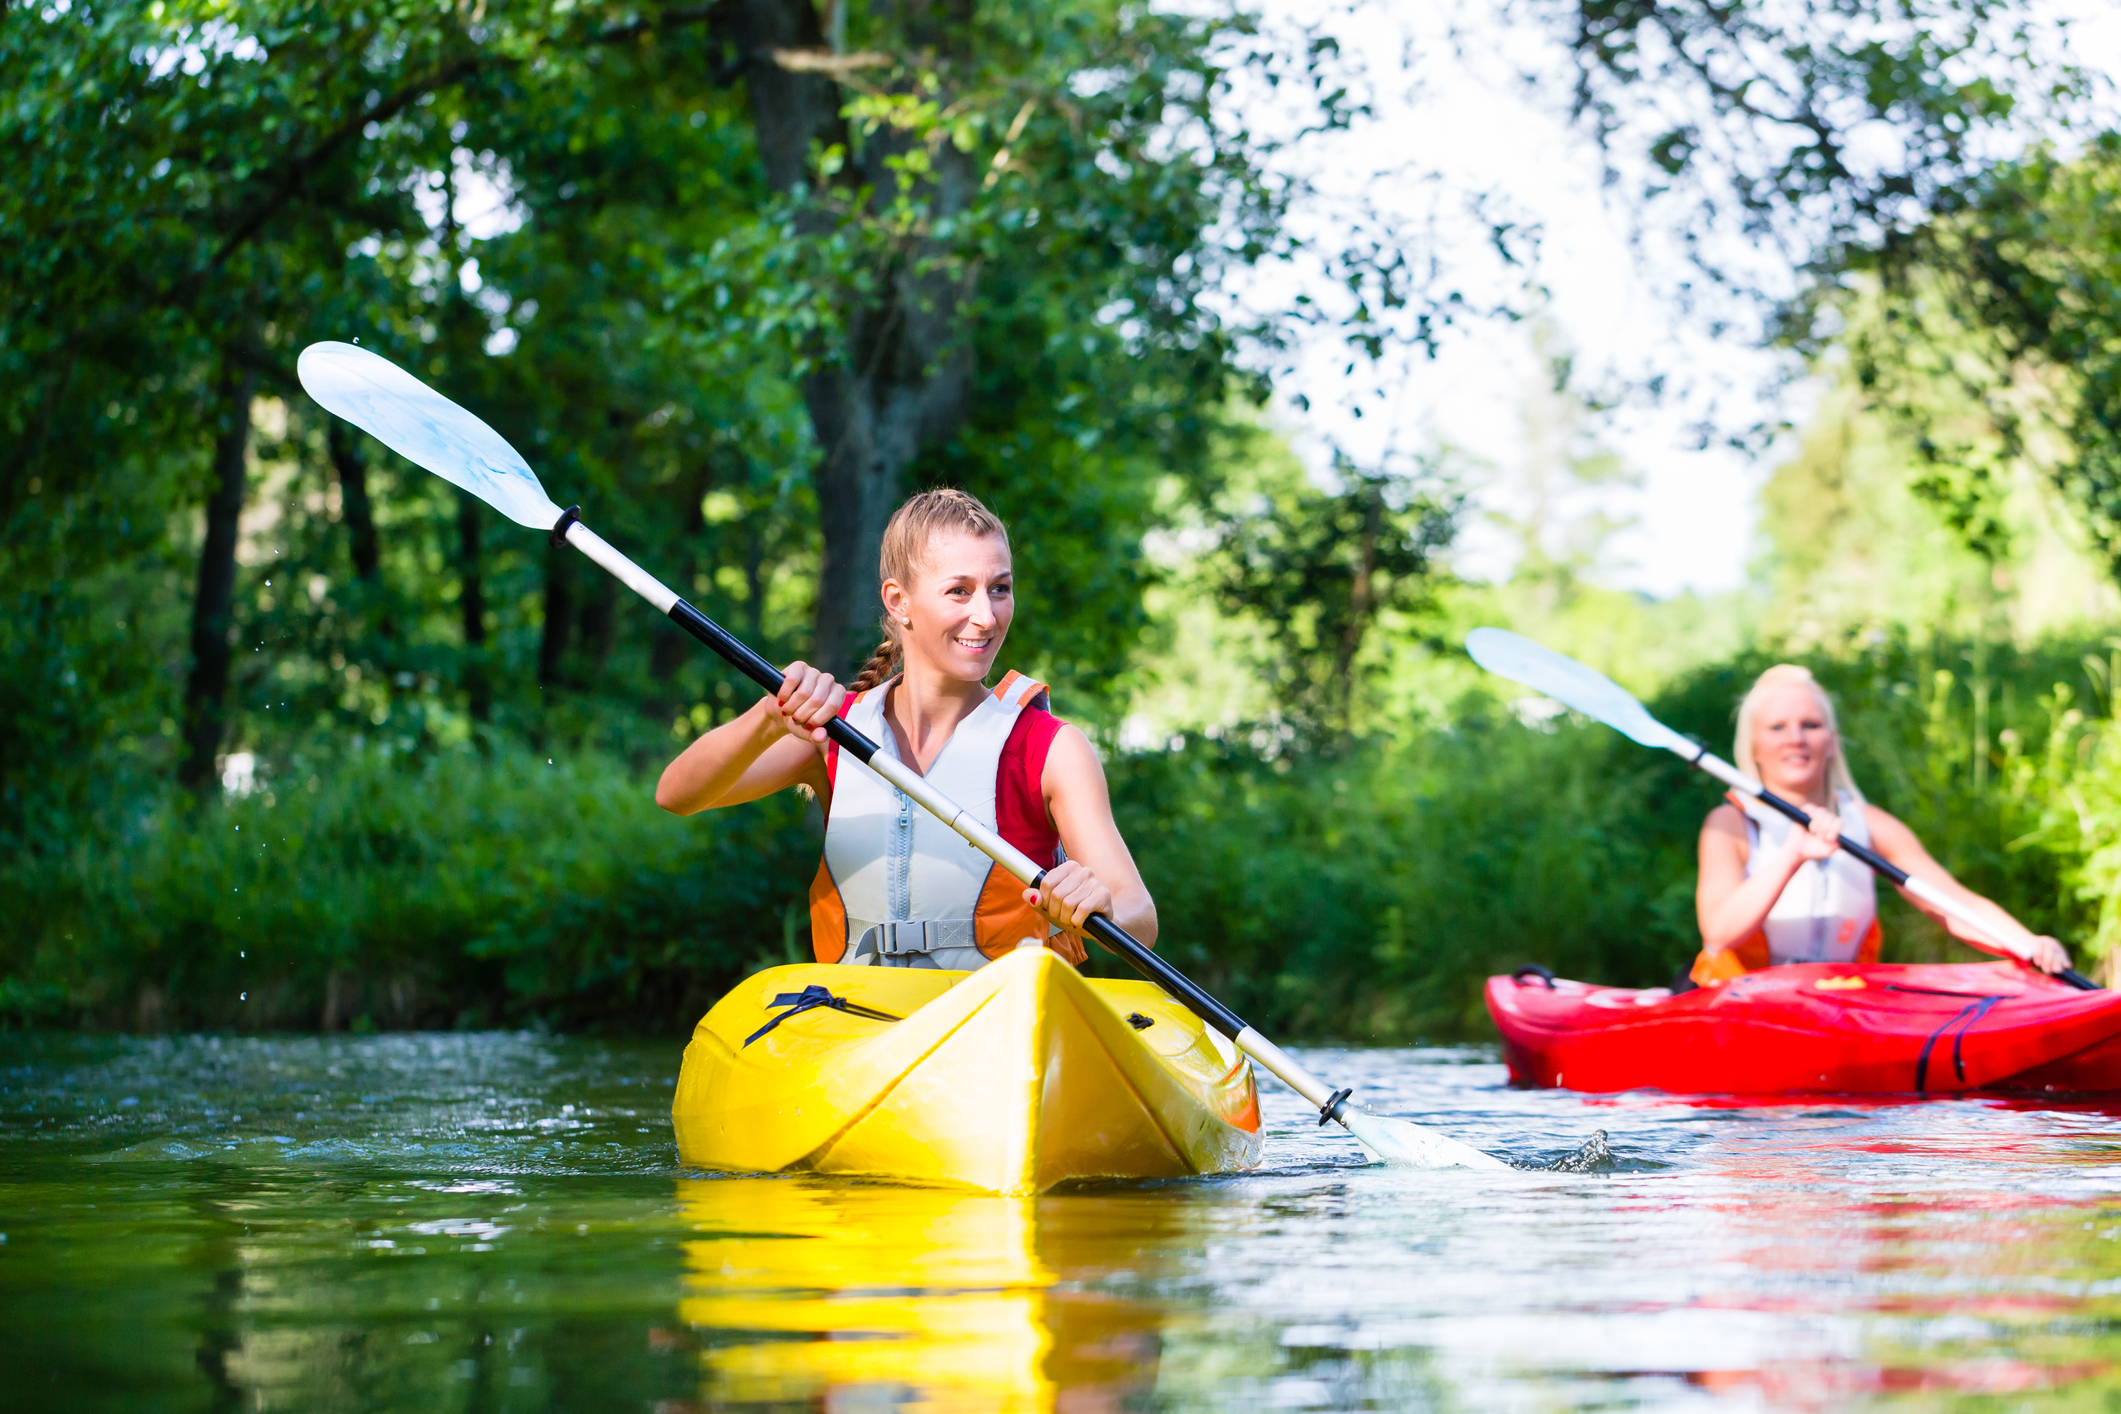 two friends kayaking in a river surrounded by forest.